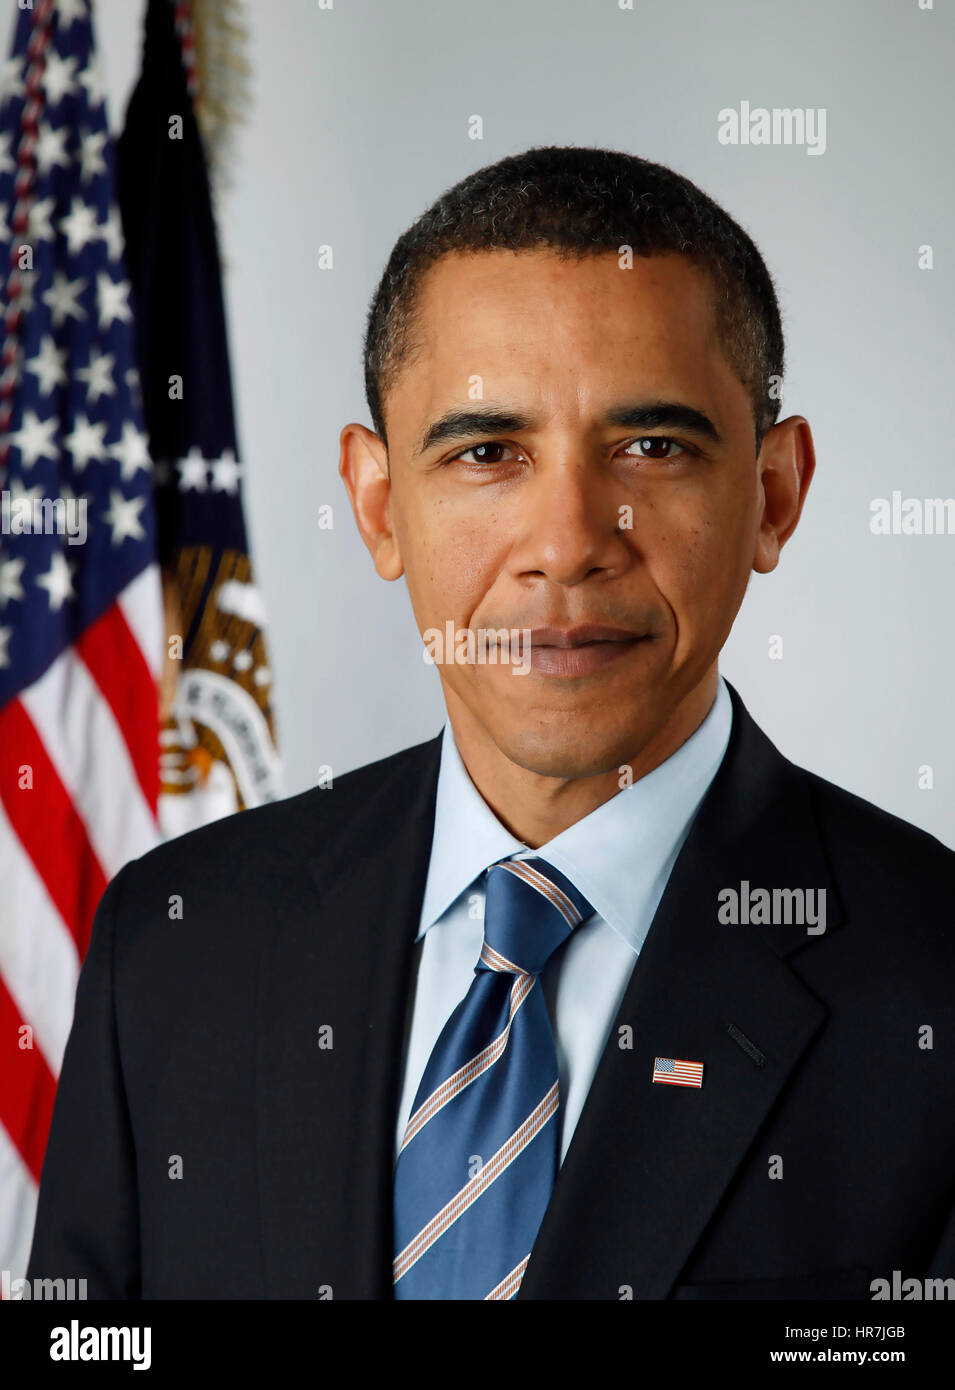 PRESIDENT  ELECT BARACK OBAMA  official portrait on 13 January 2009. Photo: Pete Souza/White House official  (Photo - Stock Image